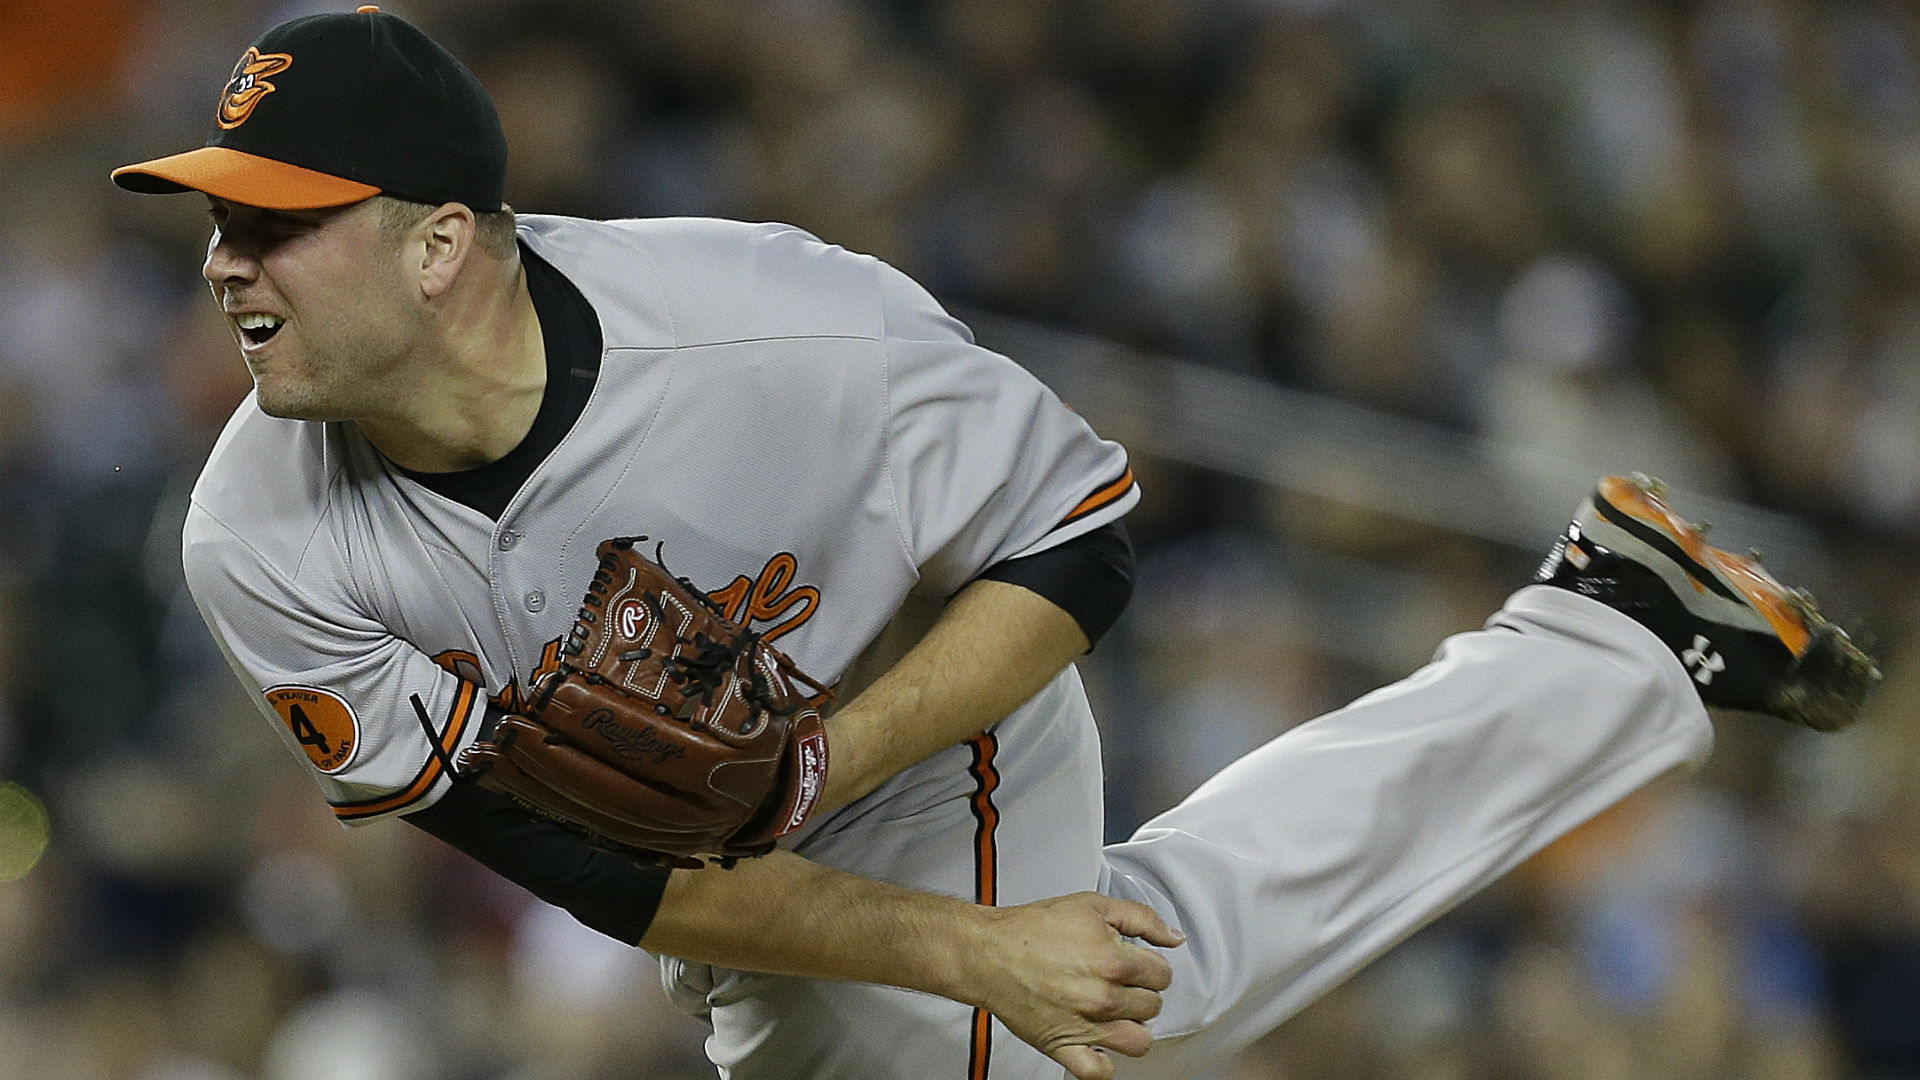 Saves up for grabs in Baltimore with Orioles closer Hunter on DL